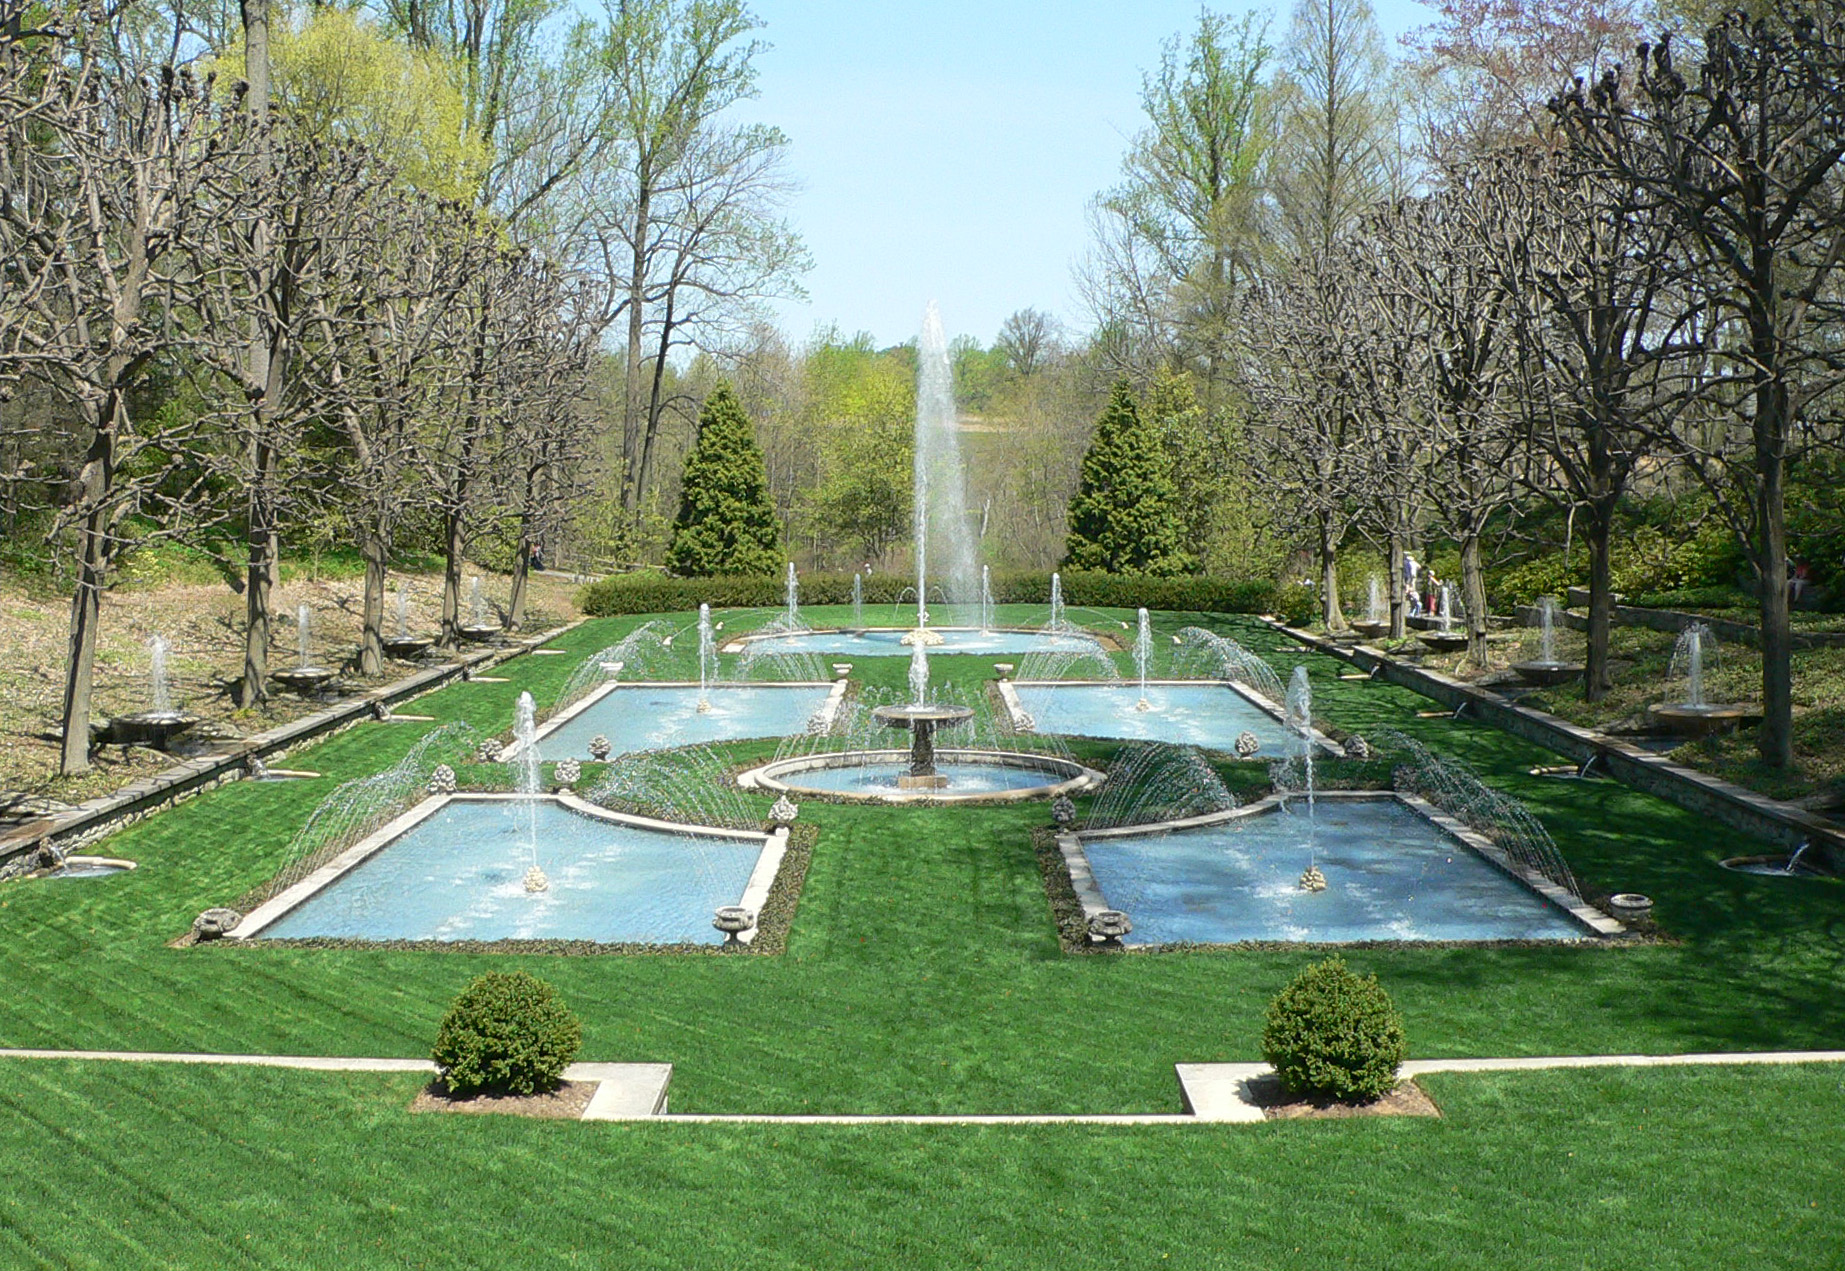 FileLongwood Gardens Fountain Garden 1jpg Wikimedia Commons